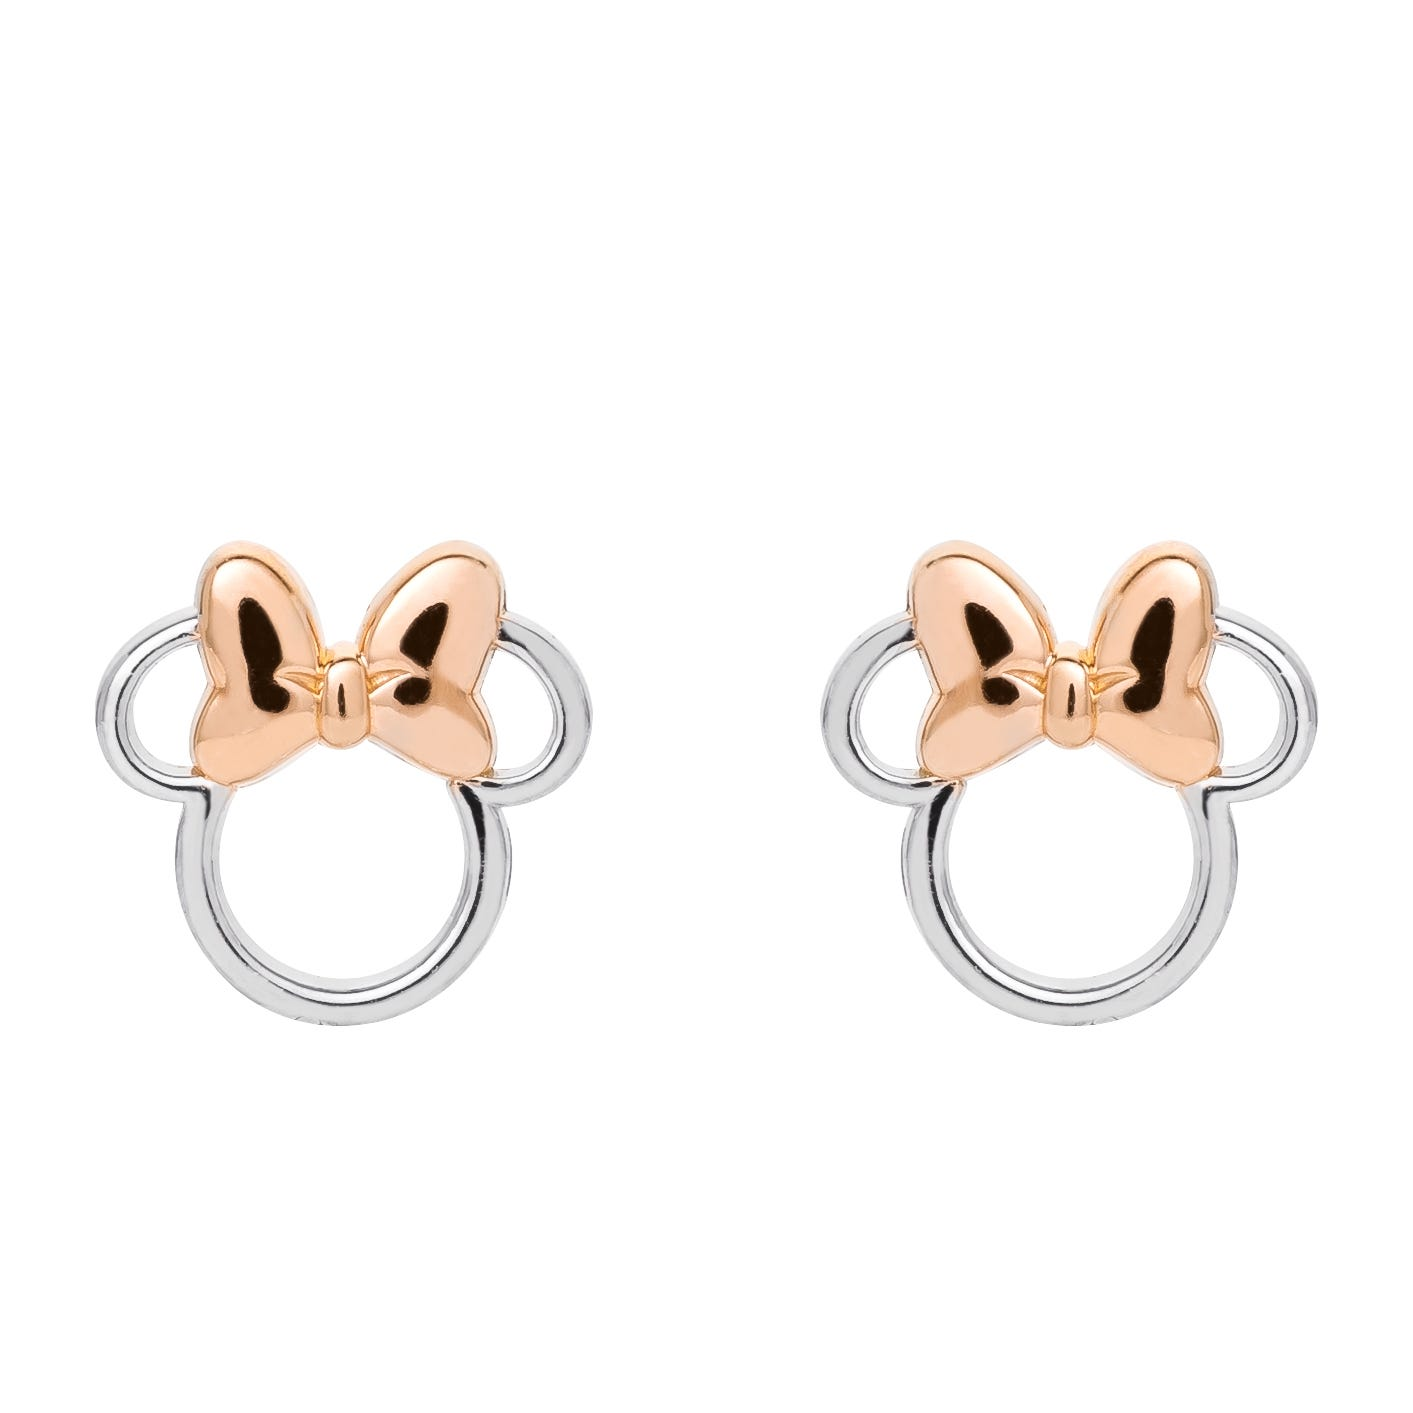 DISNEY© Minnie Mouse Stud Earrings in Sterling Silver & Rose Gold Plated